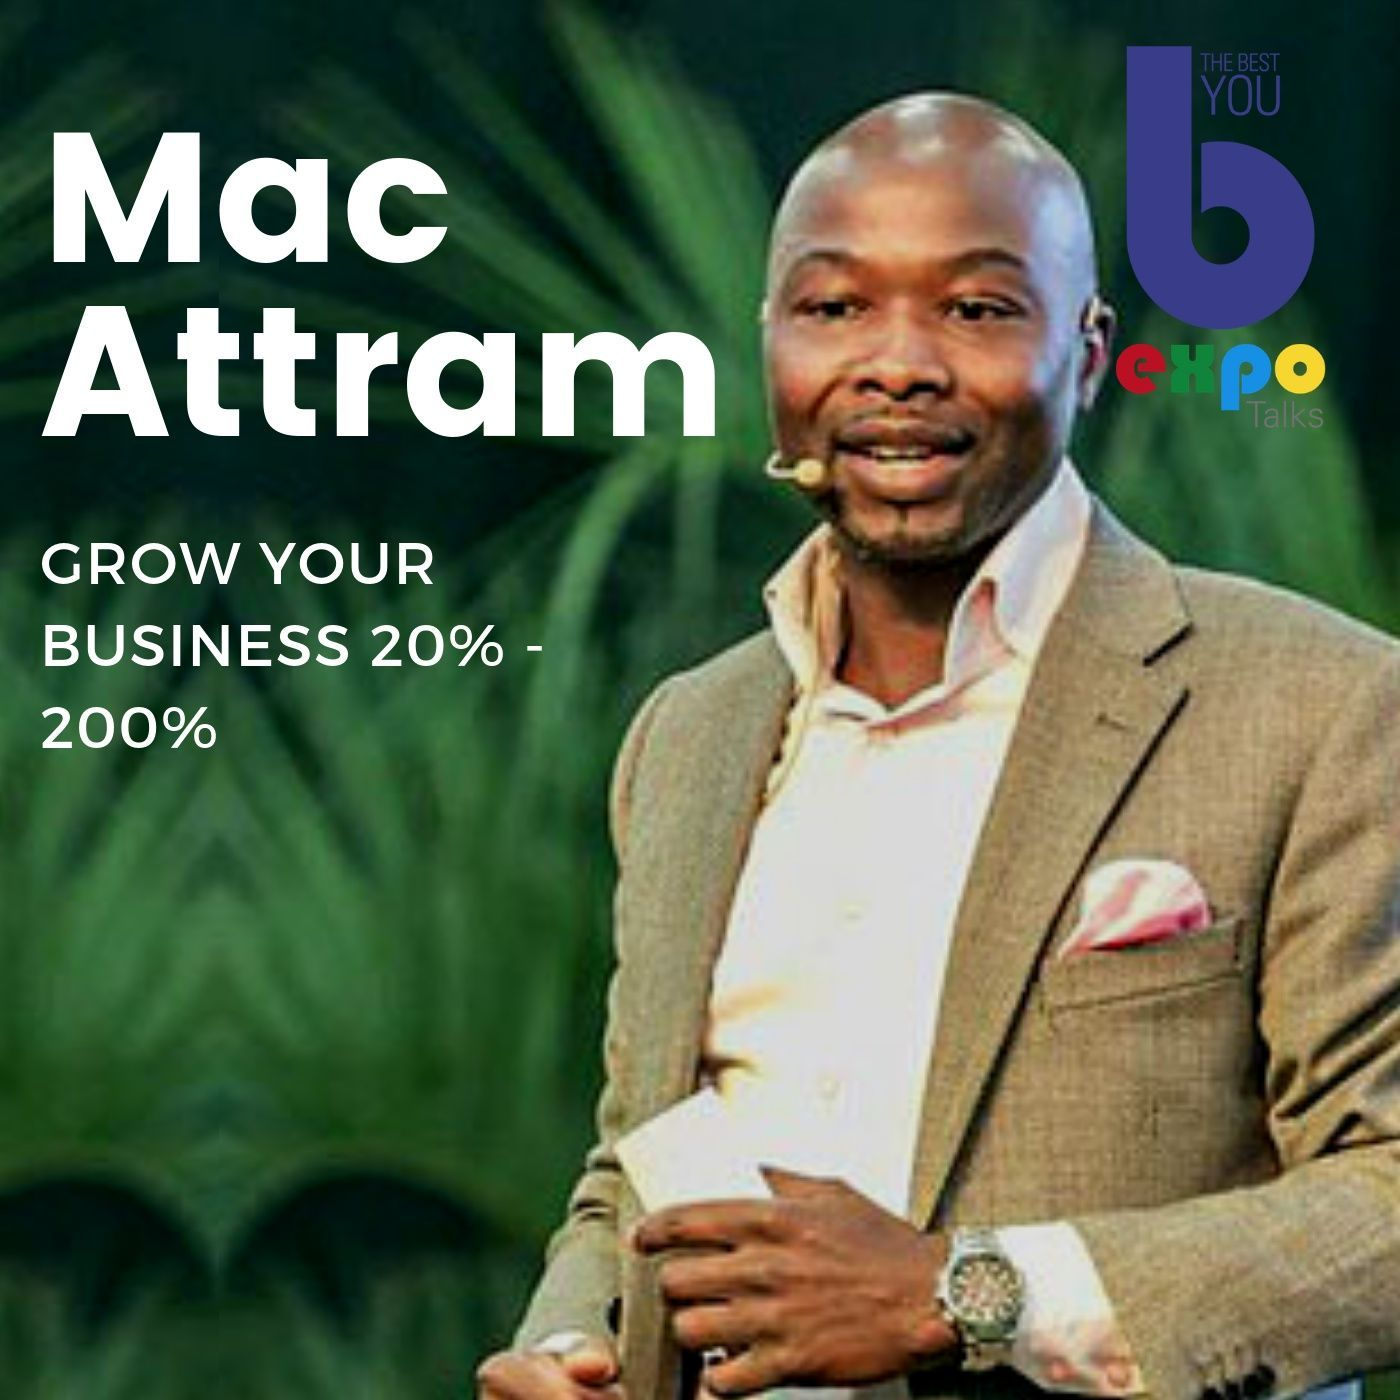 Listen to Mac Attram at The Best You EXPO